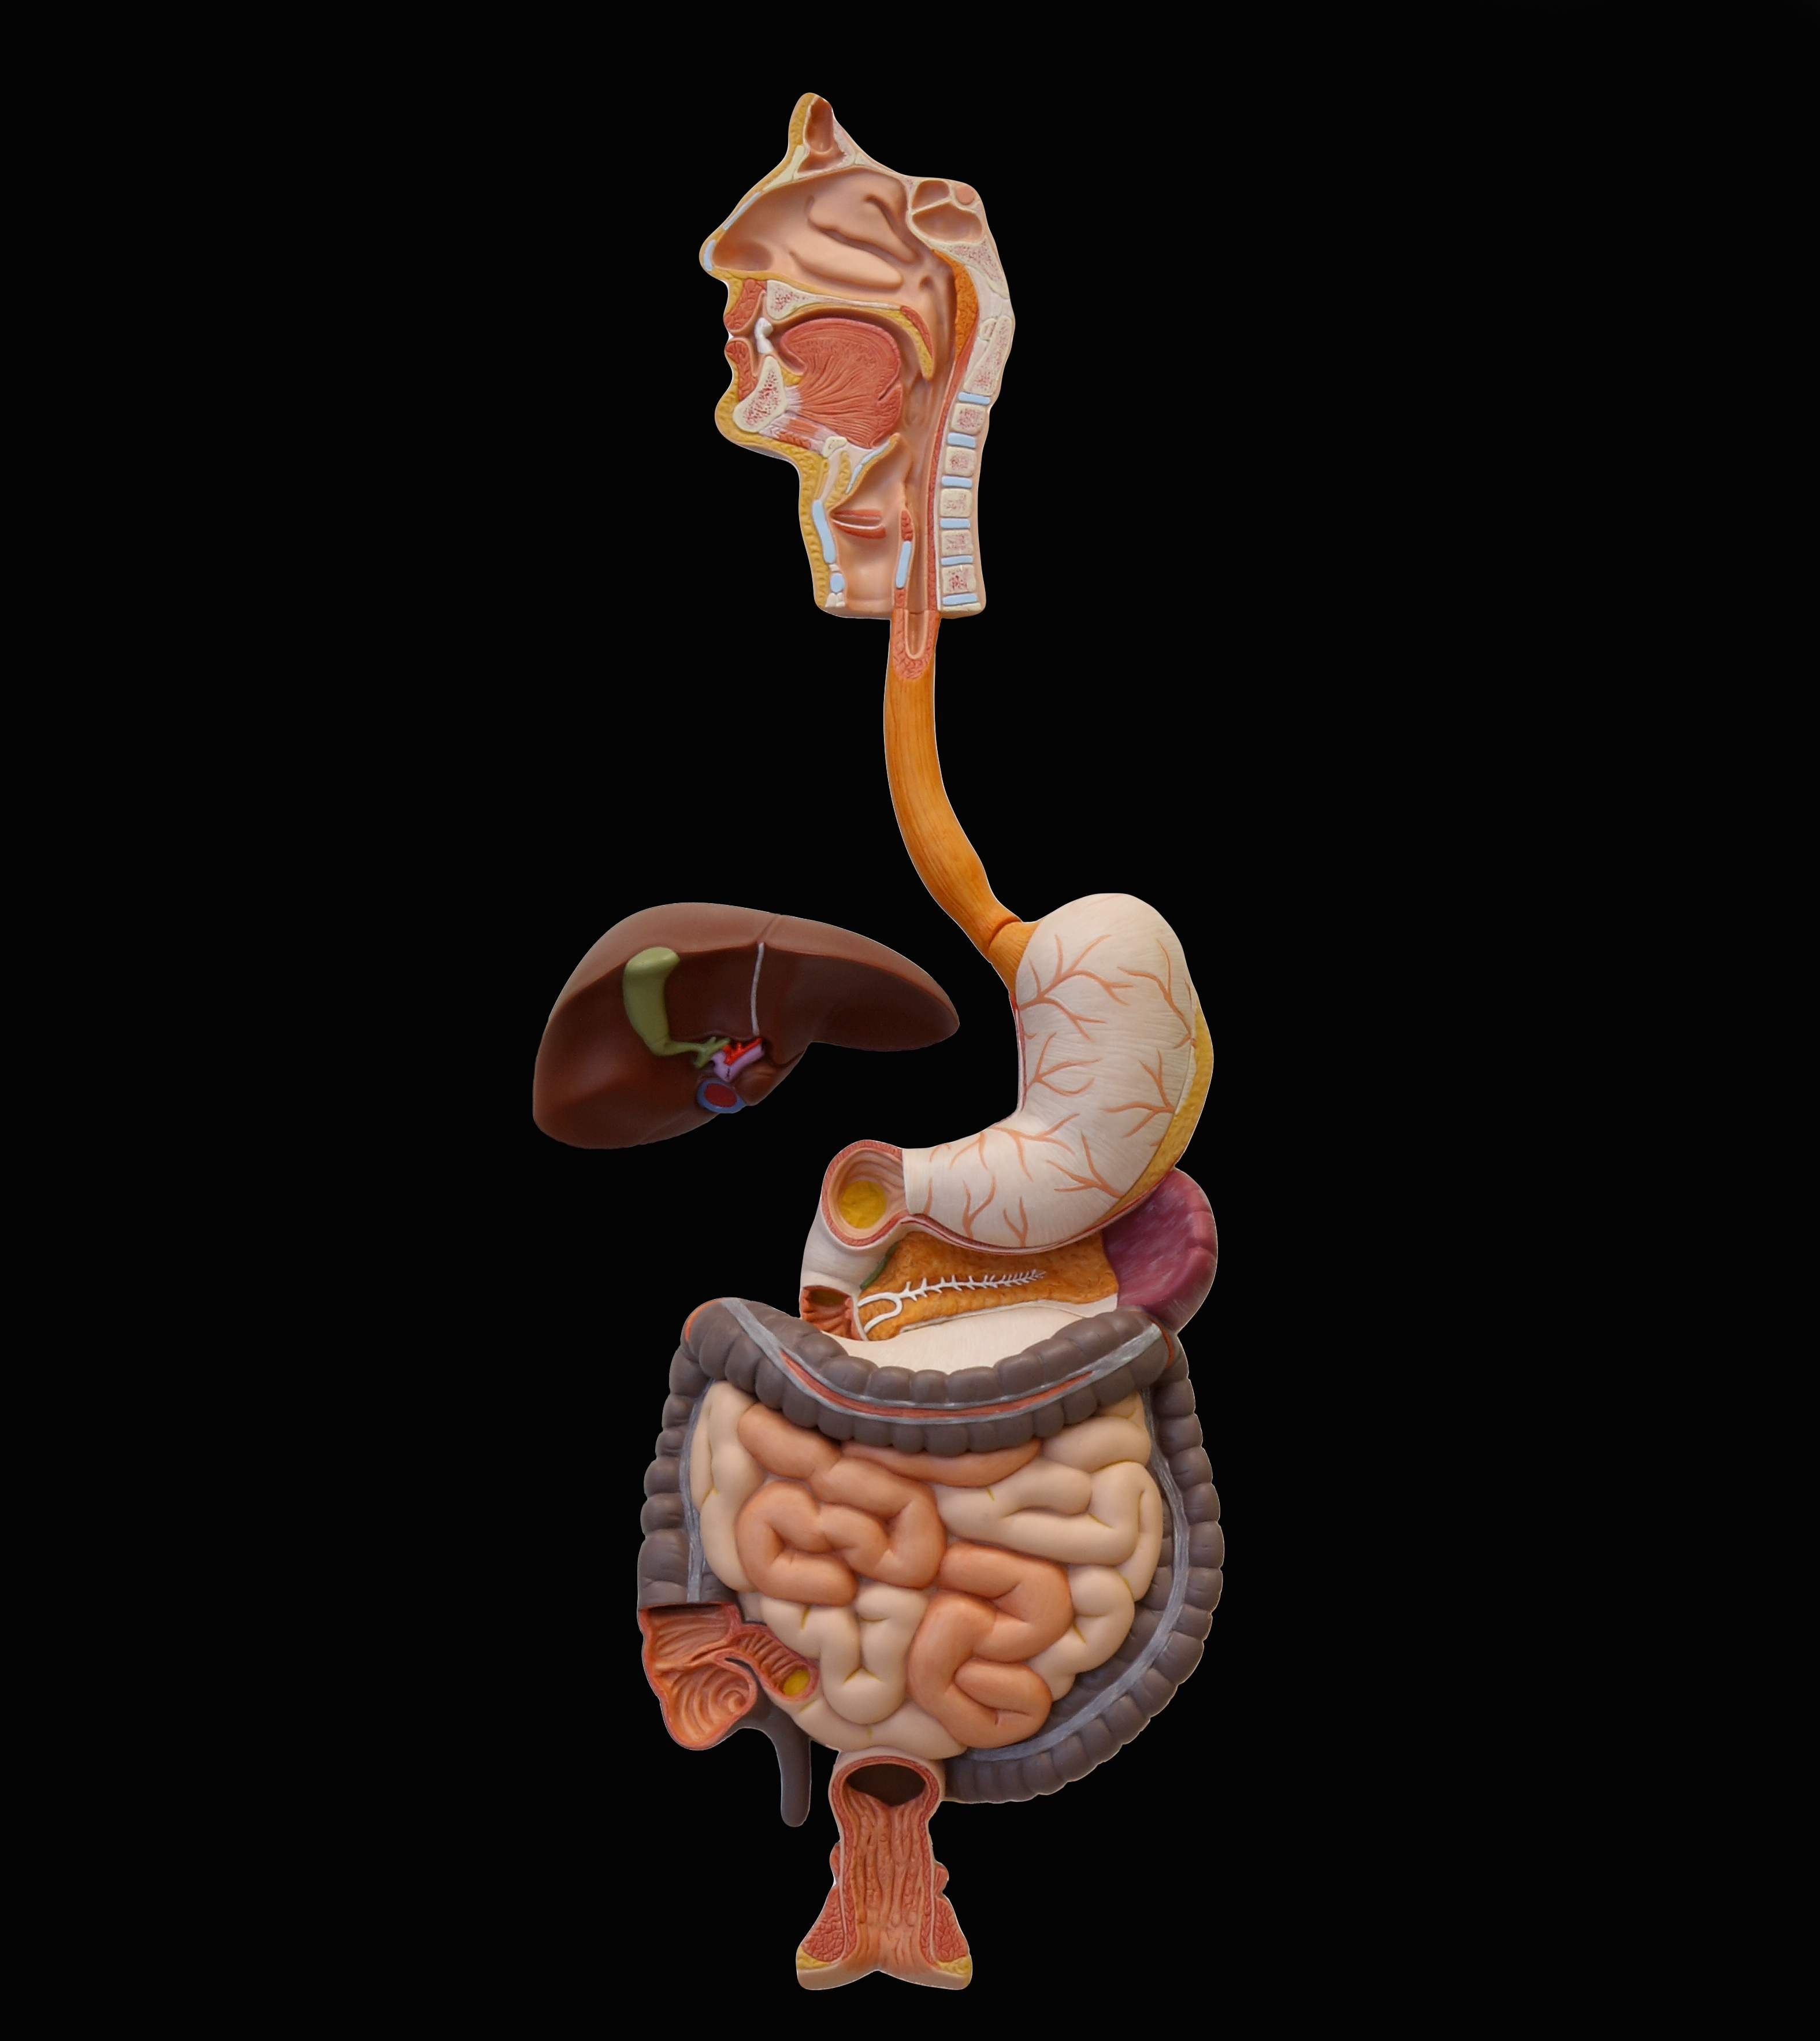 Pictures Of Digestive System Of The Human Body Pictures Wallpapers